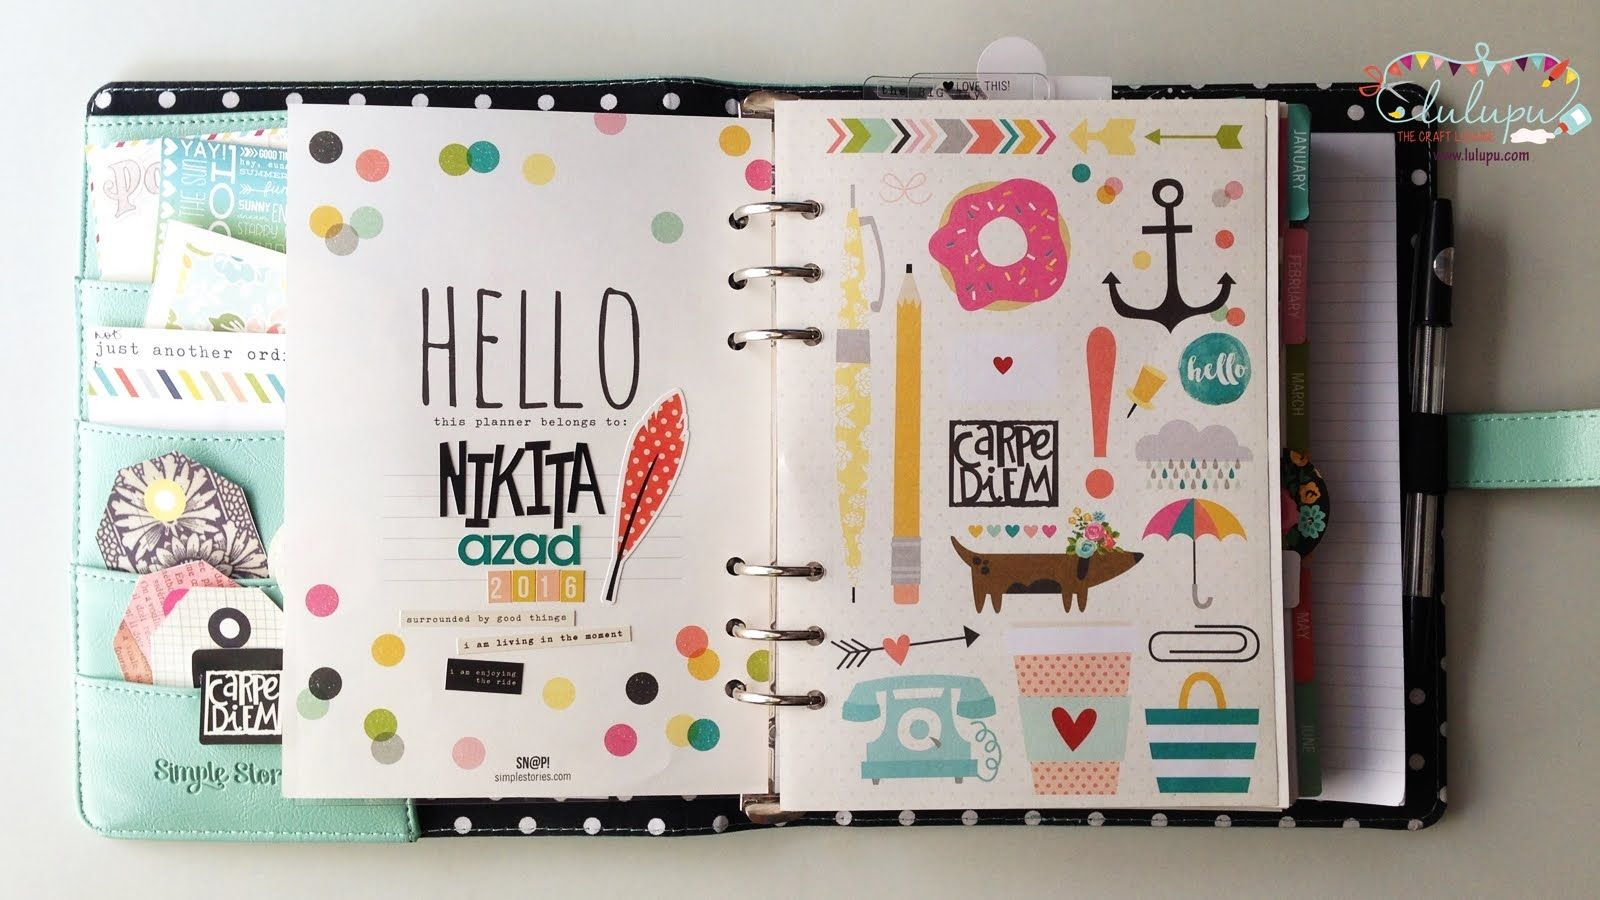 Simple Stories Carpe Diem Planner showcase by Nikita Azad for Lulupu.com